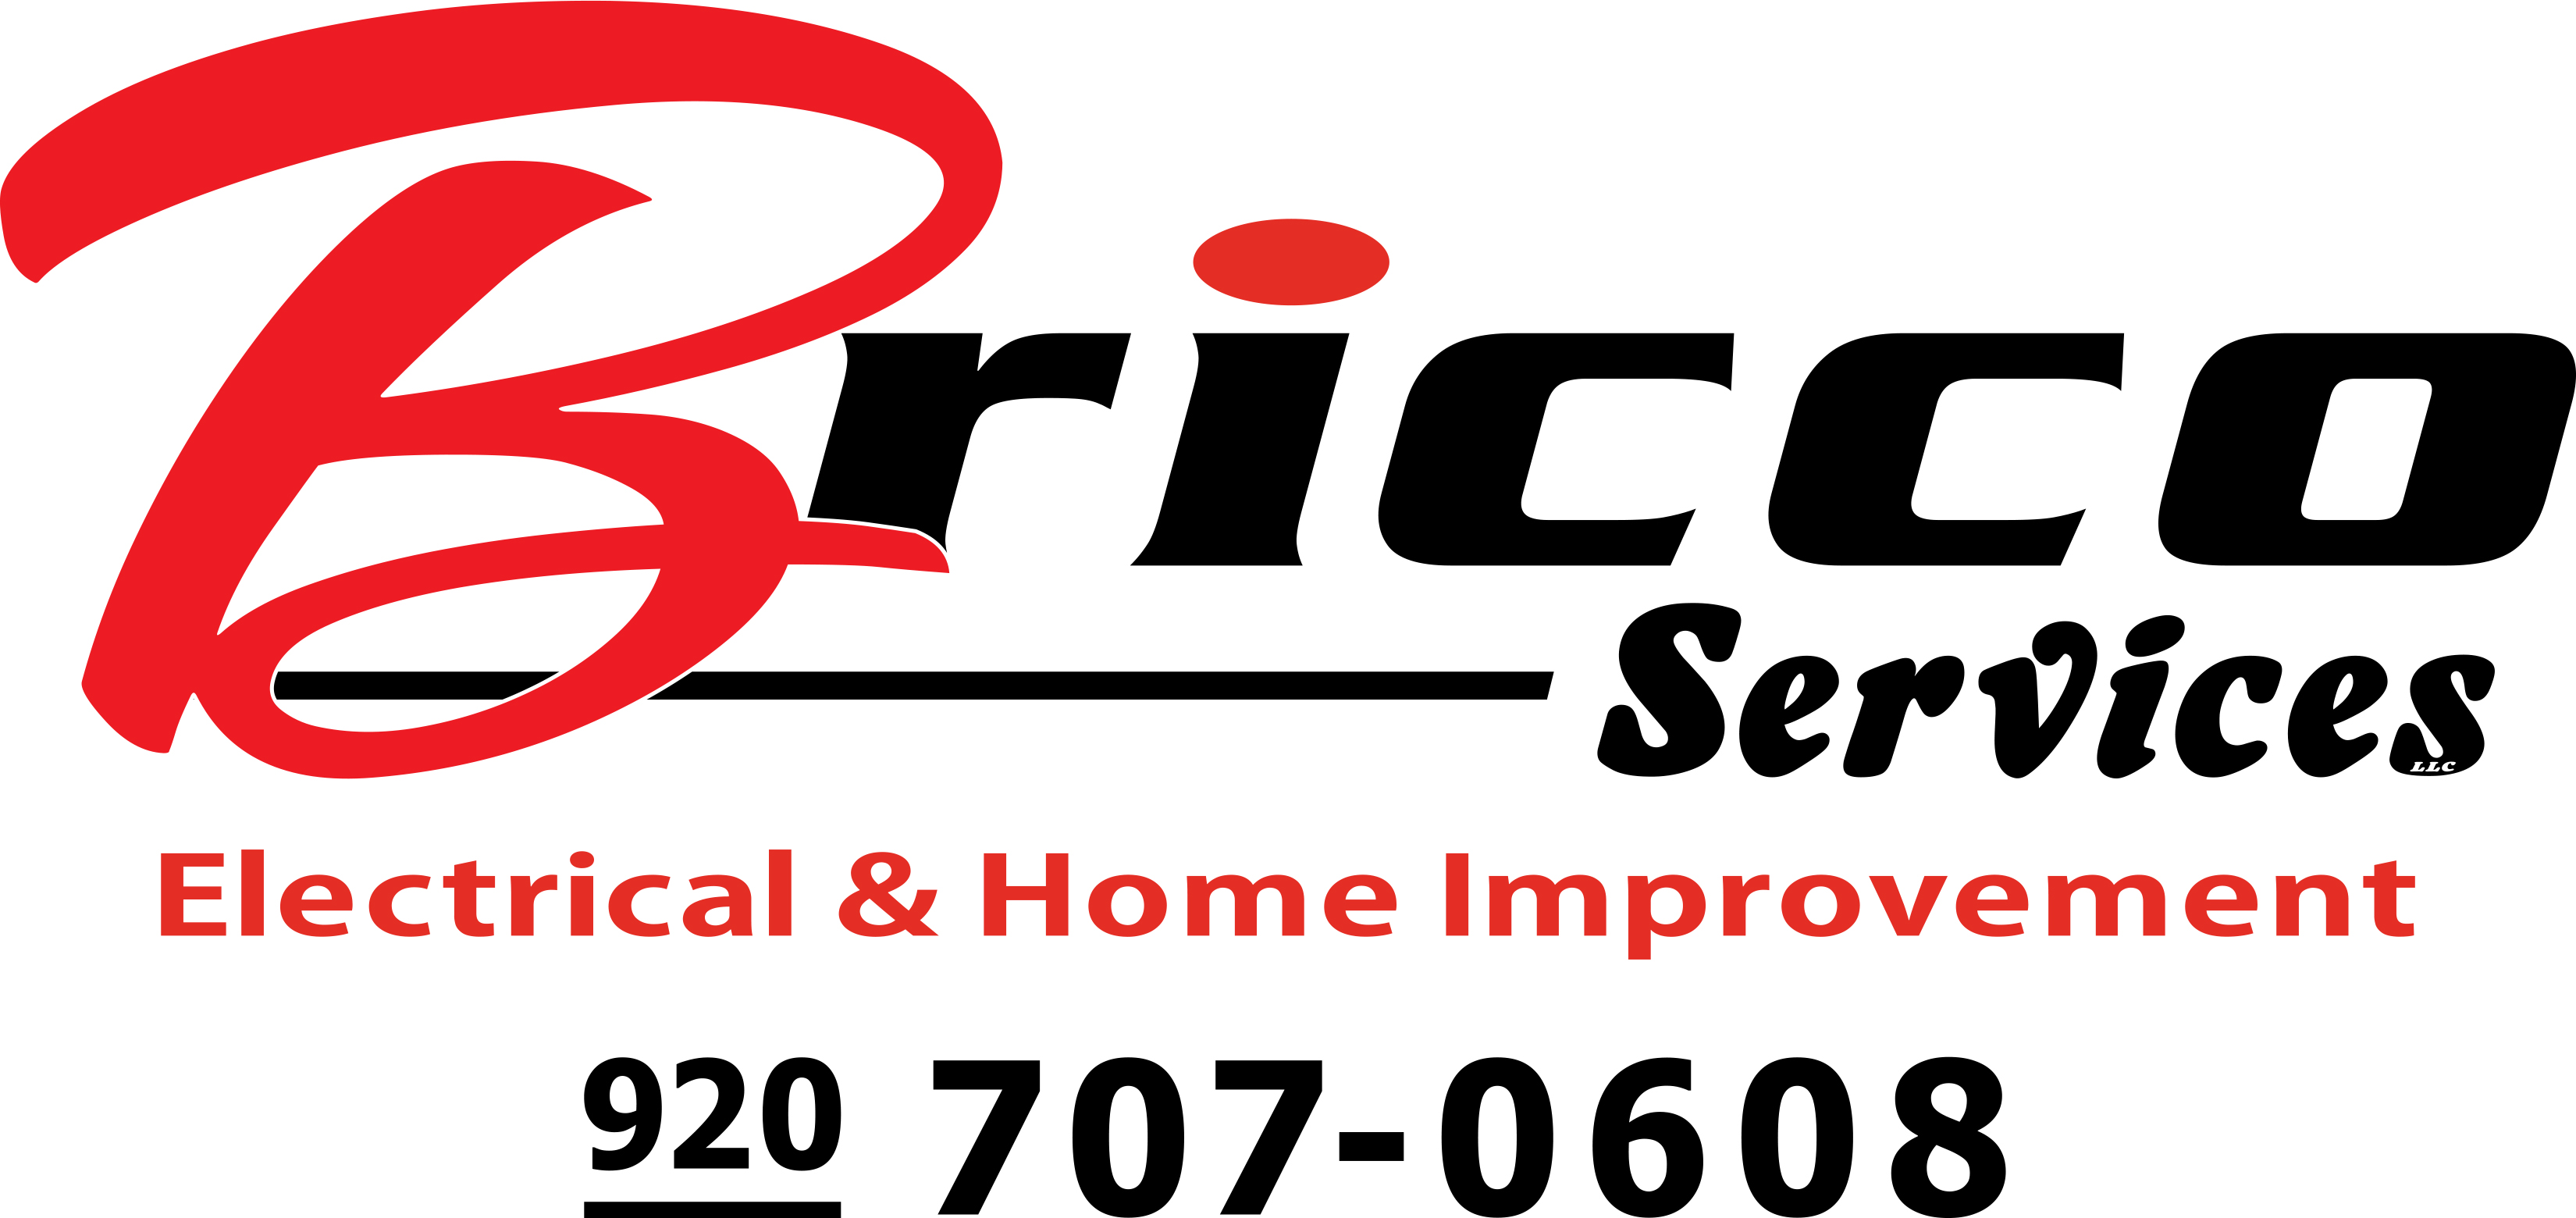 Bricco Services